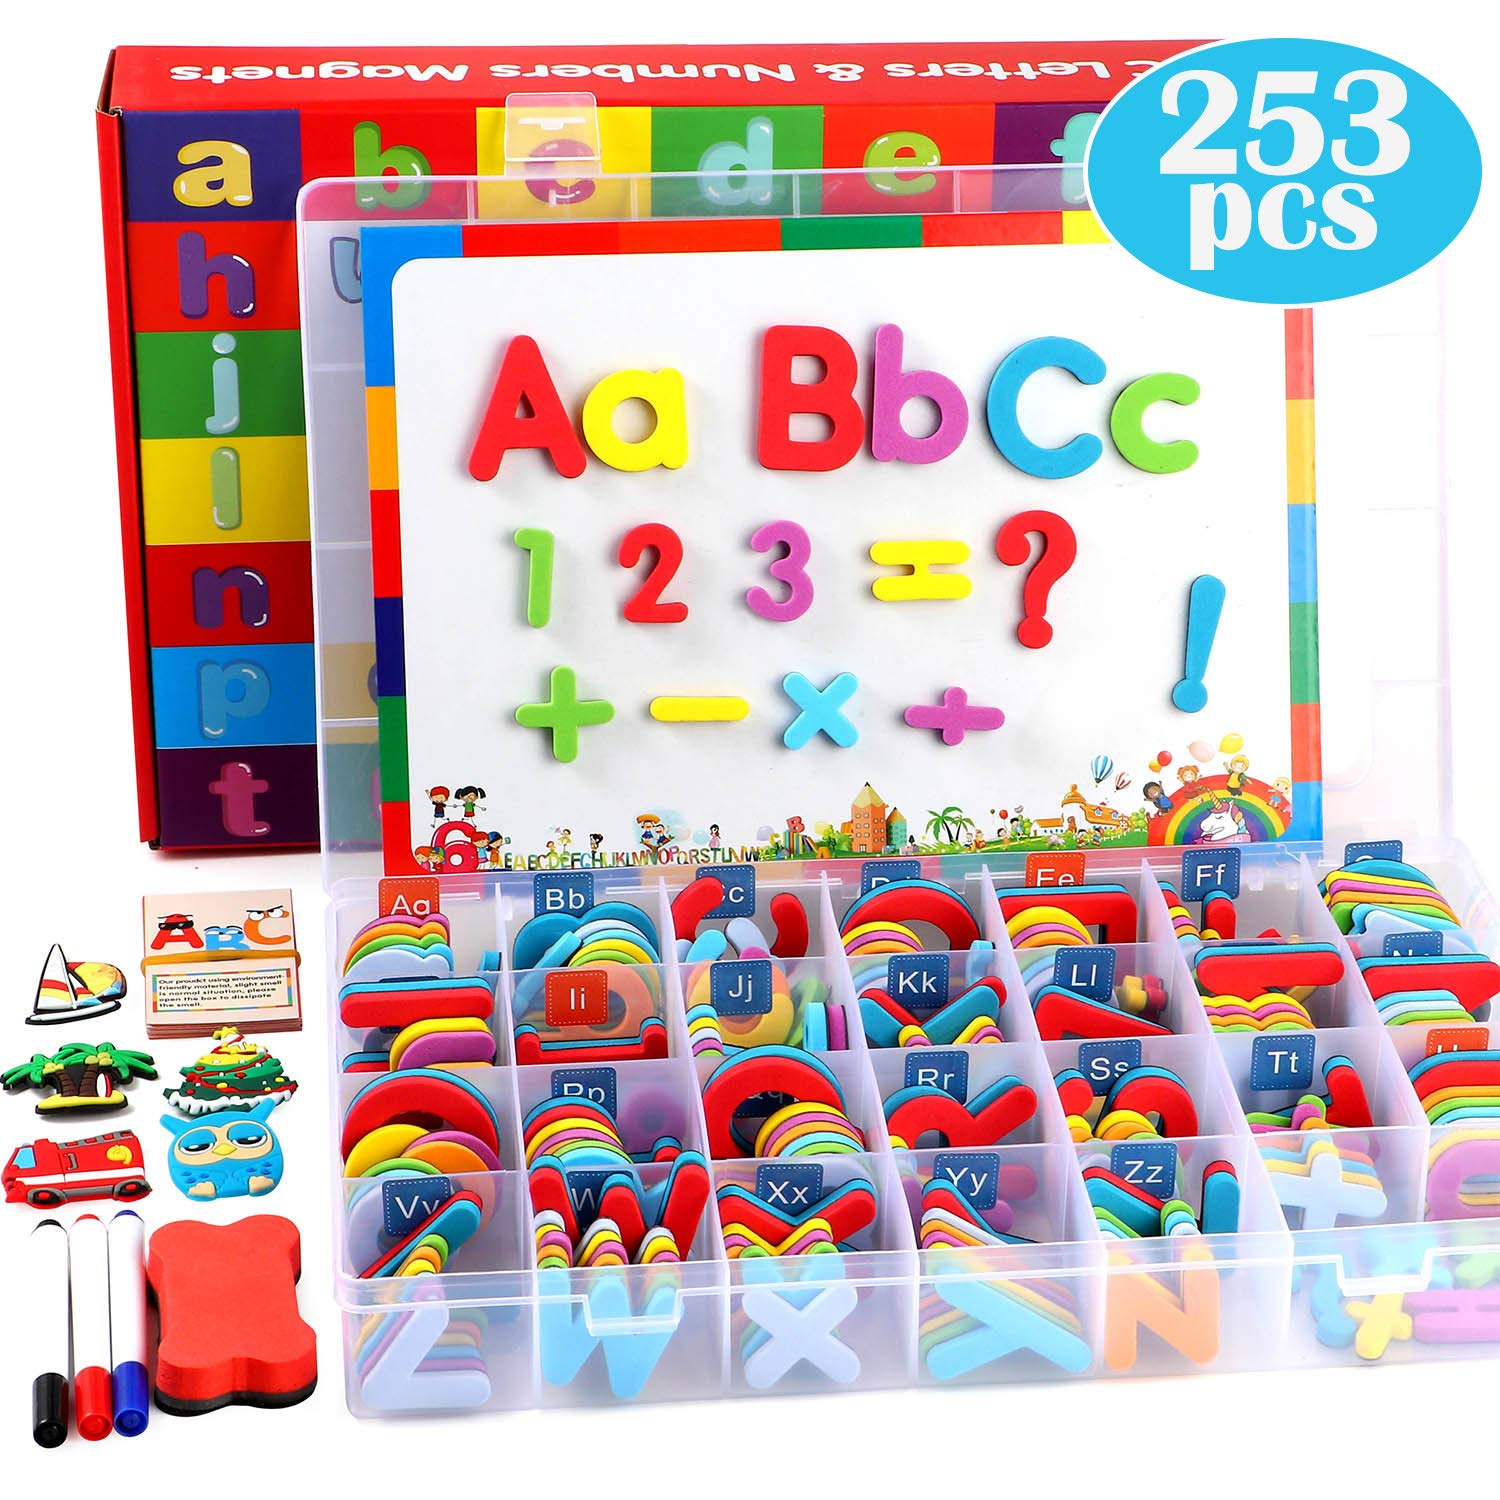 253 PCS Magnetic Letters Numbers with Magnetic Board and Storage Box Foam Alphabet ABC Refrigerator Magnets Educational Toys for Kids Children Toddlers by Toyssa